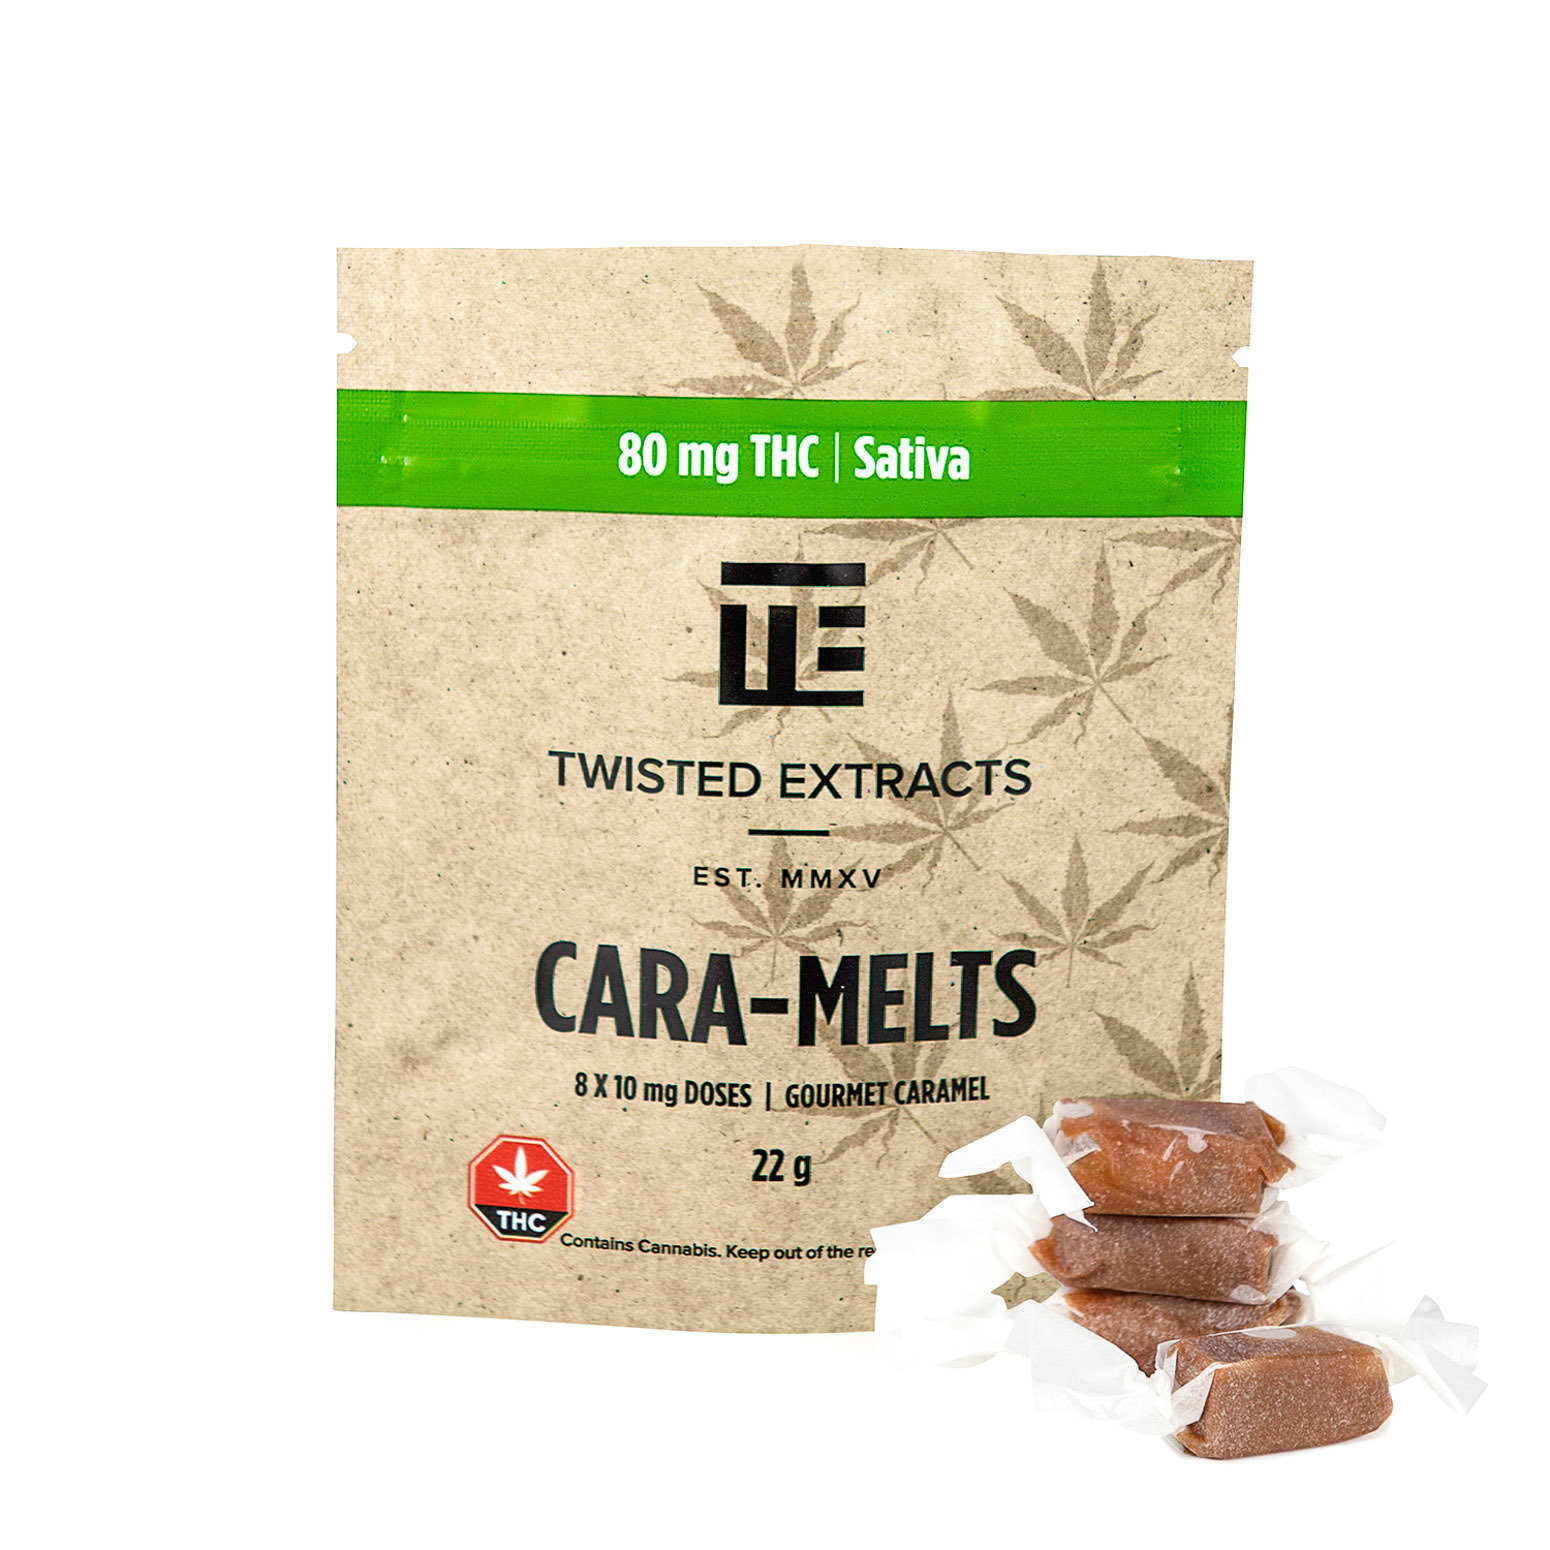 Cara-Melts THC Sativa (80mg) by Twisted Extracts 00039